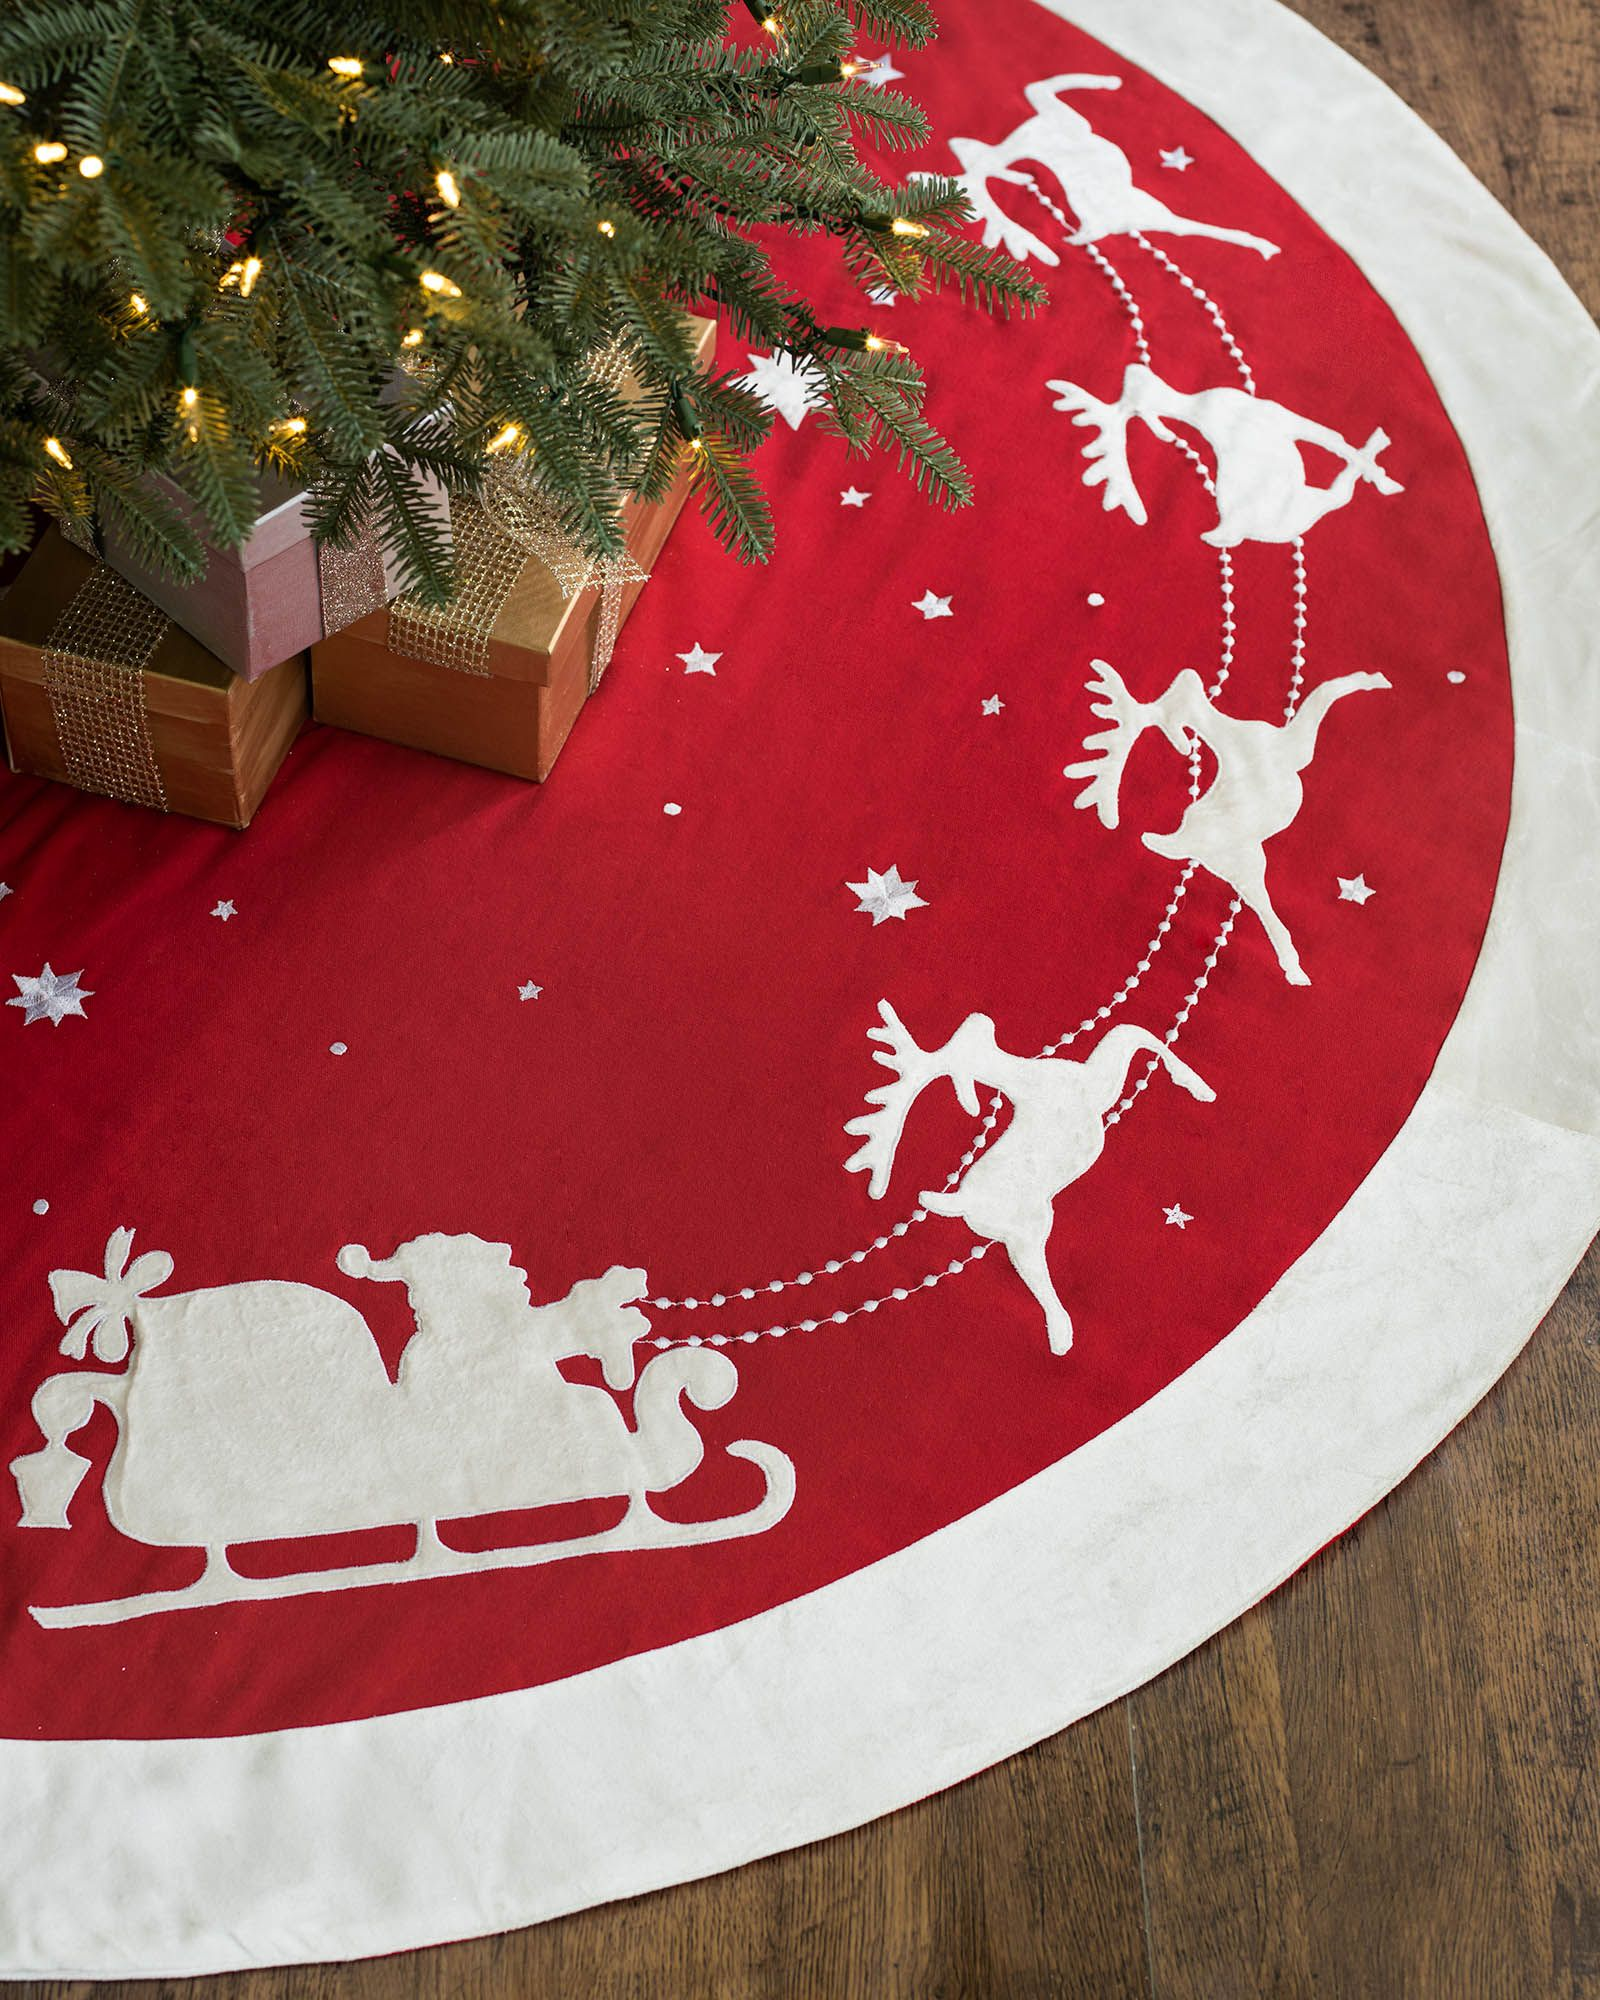 Dashing Through The Snow Christmas Tree Skirt Xmas Tree Skirts Christmas Tree Skirt Christmas Tree Themes